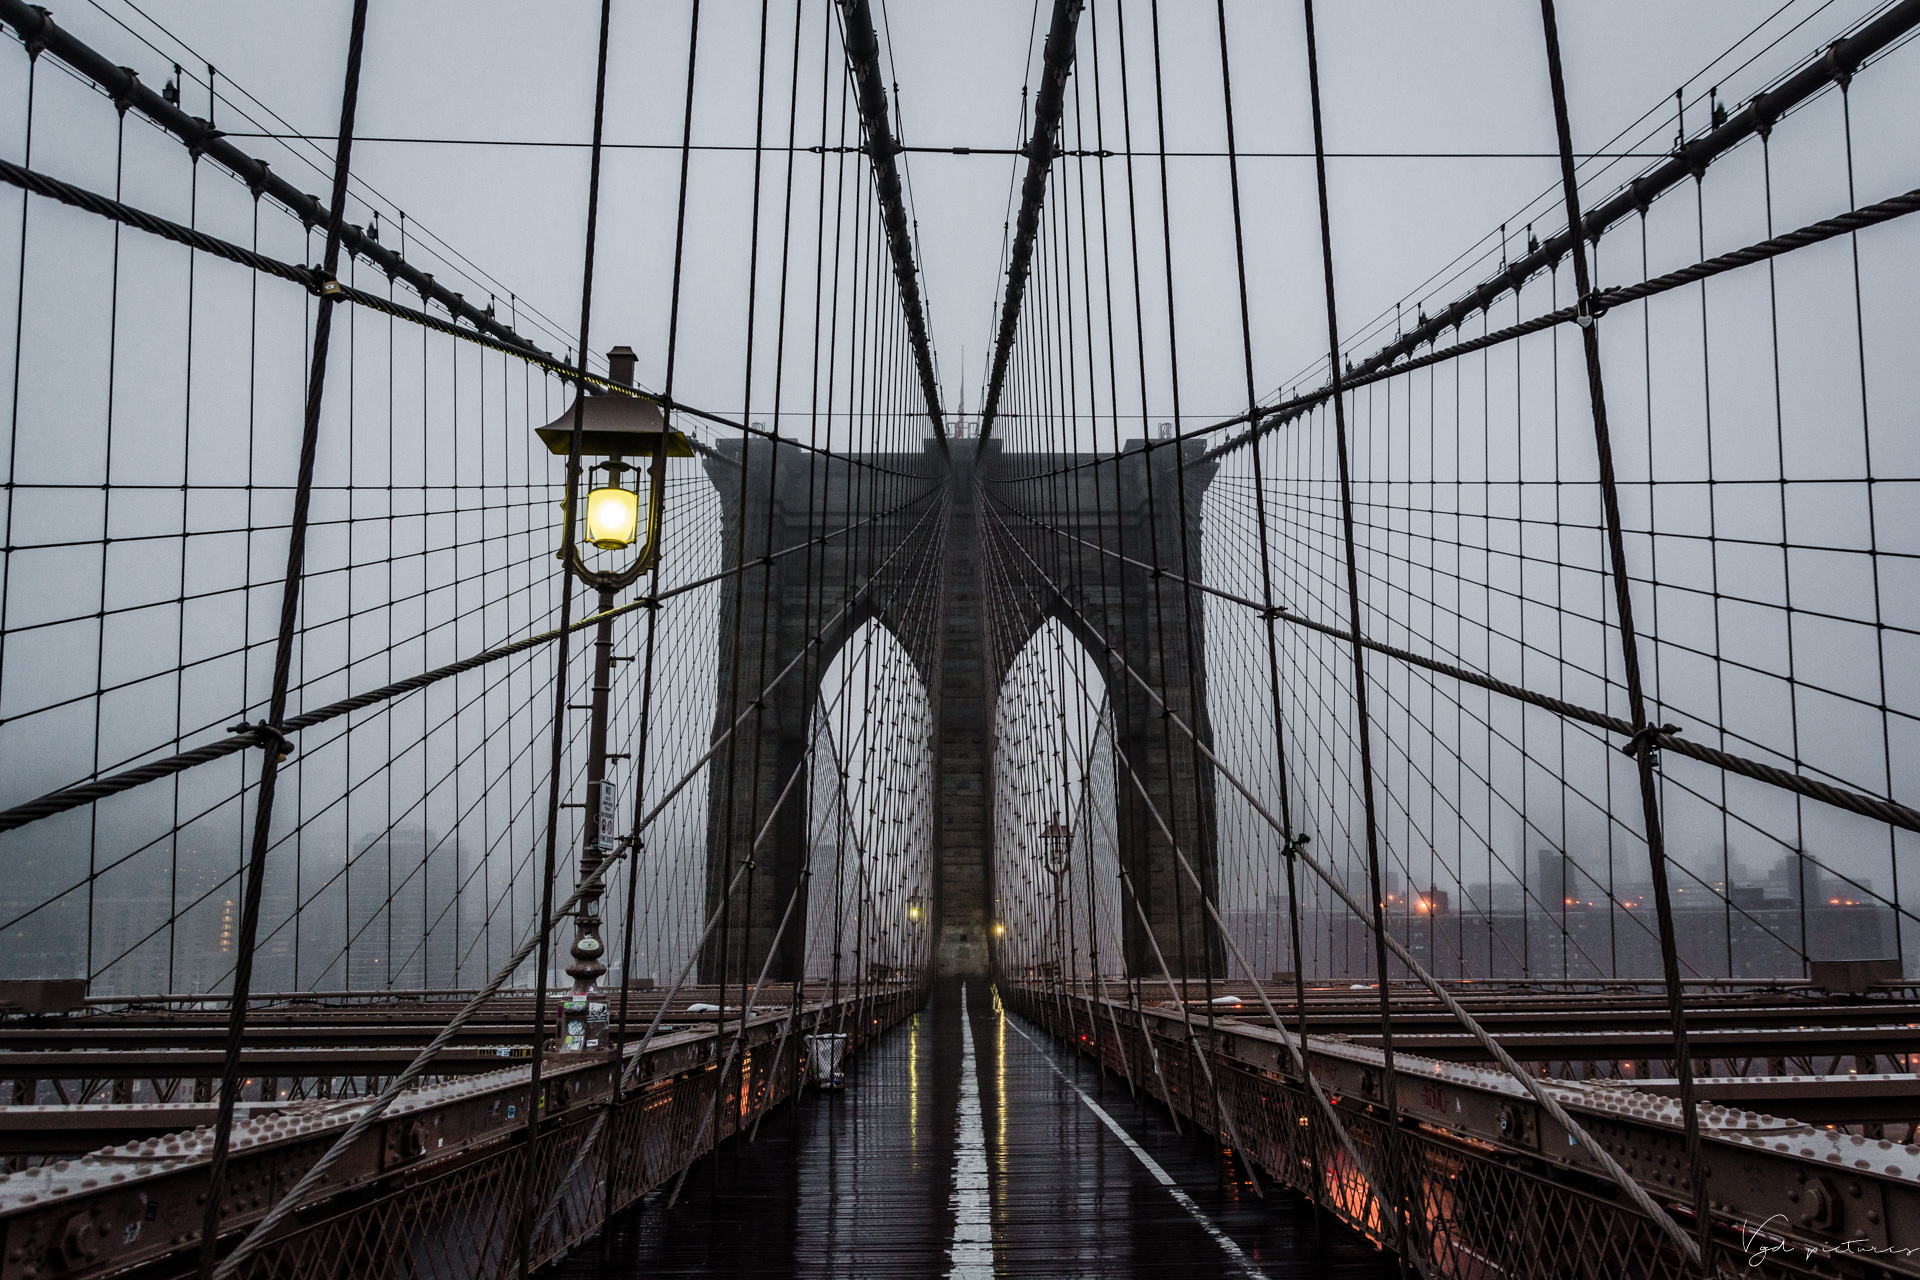 Brooklyn Bridge early in the morning